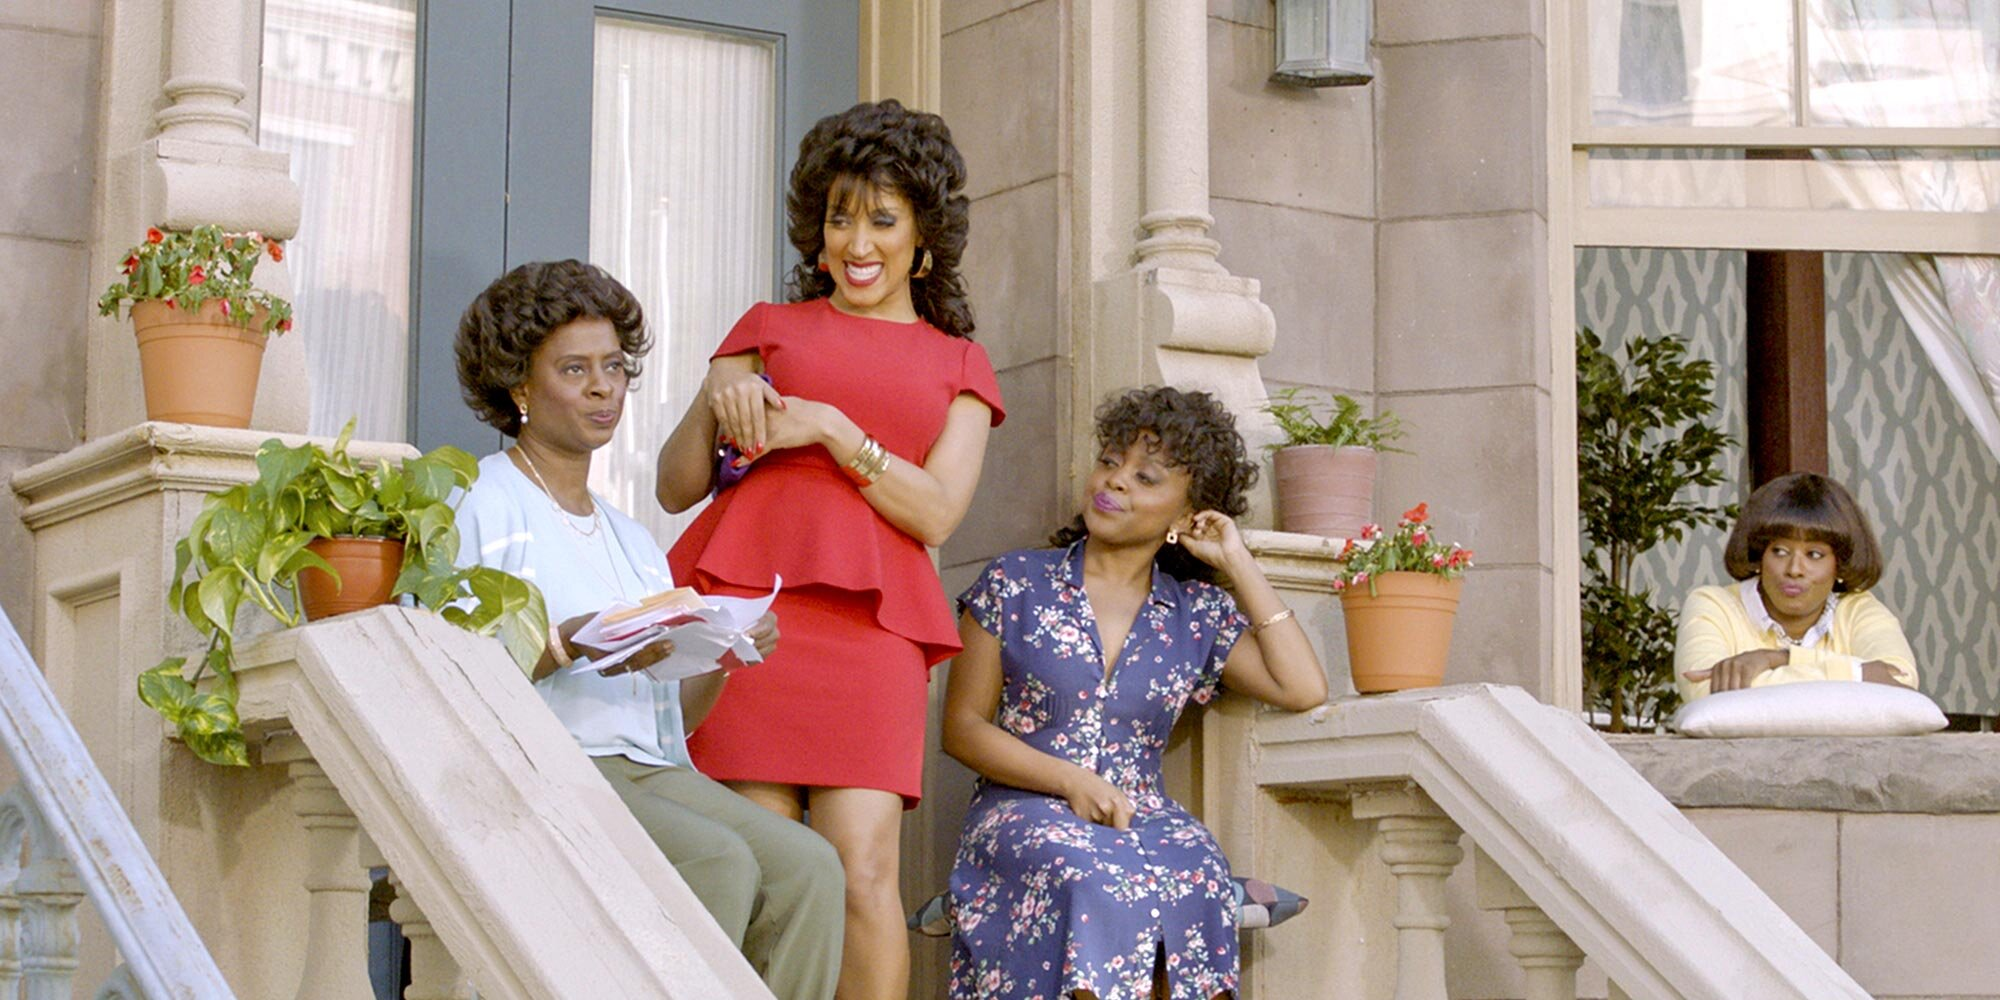 The best cameos on 'A Black Lady Sketch Show'